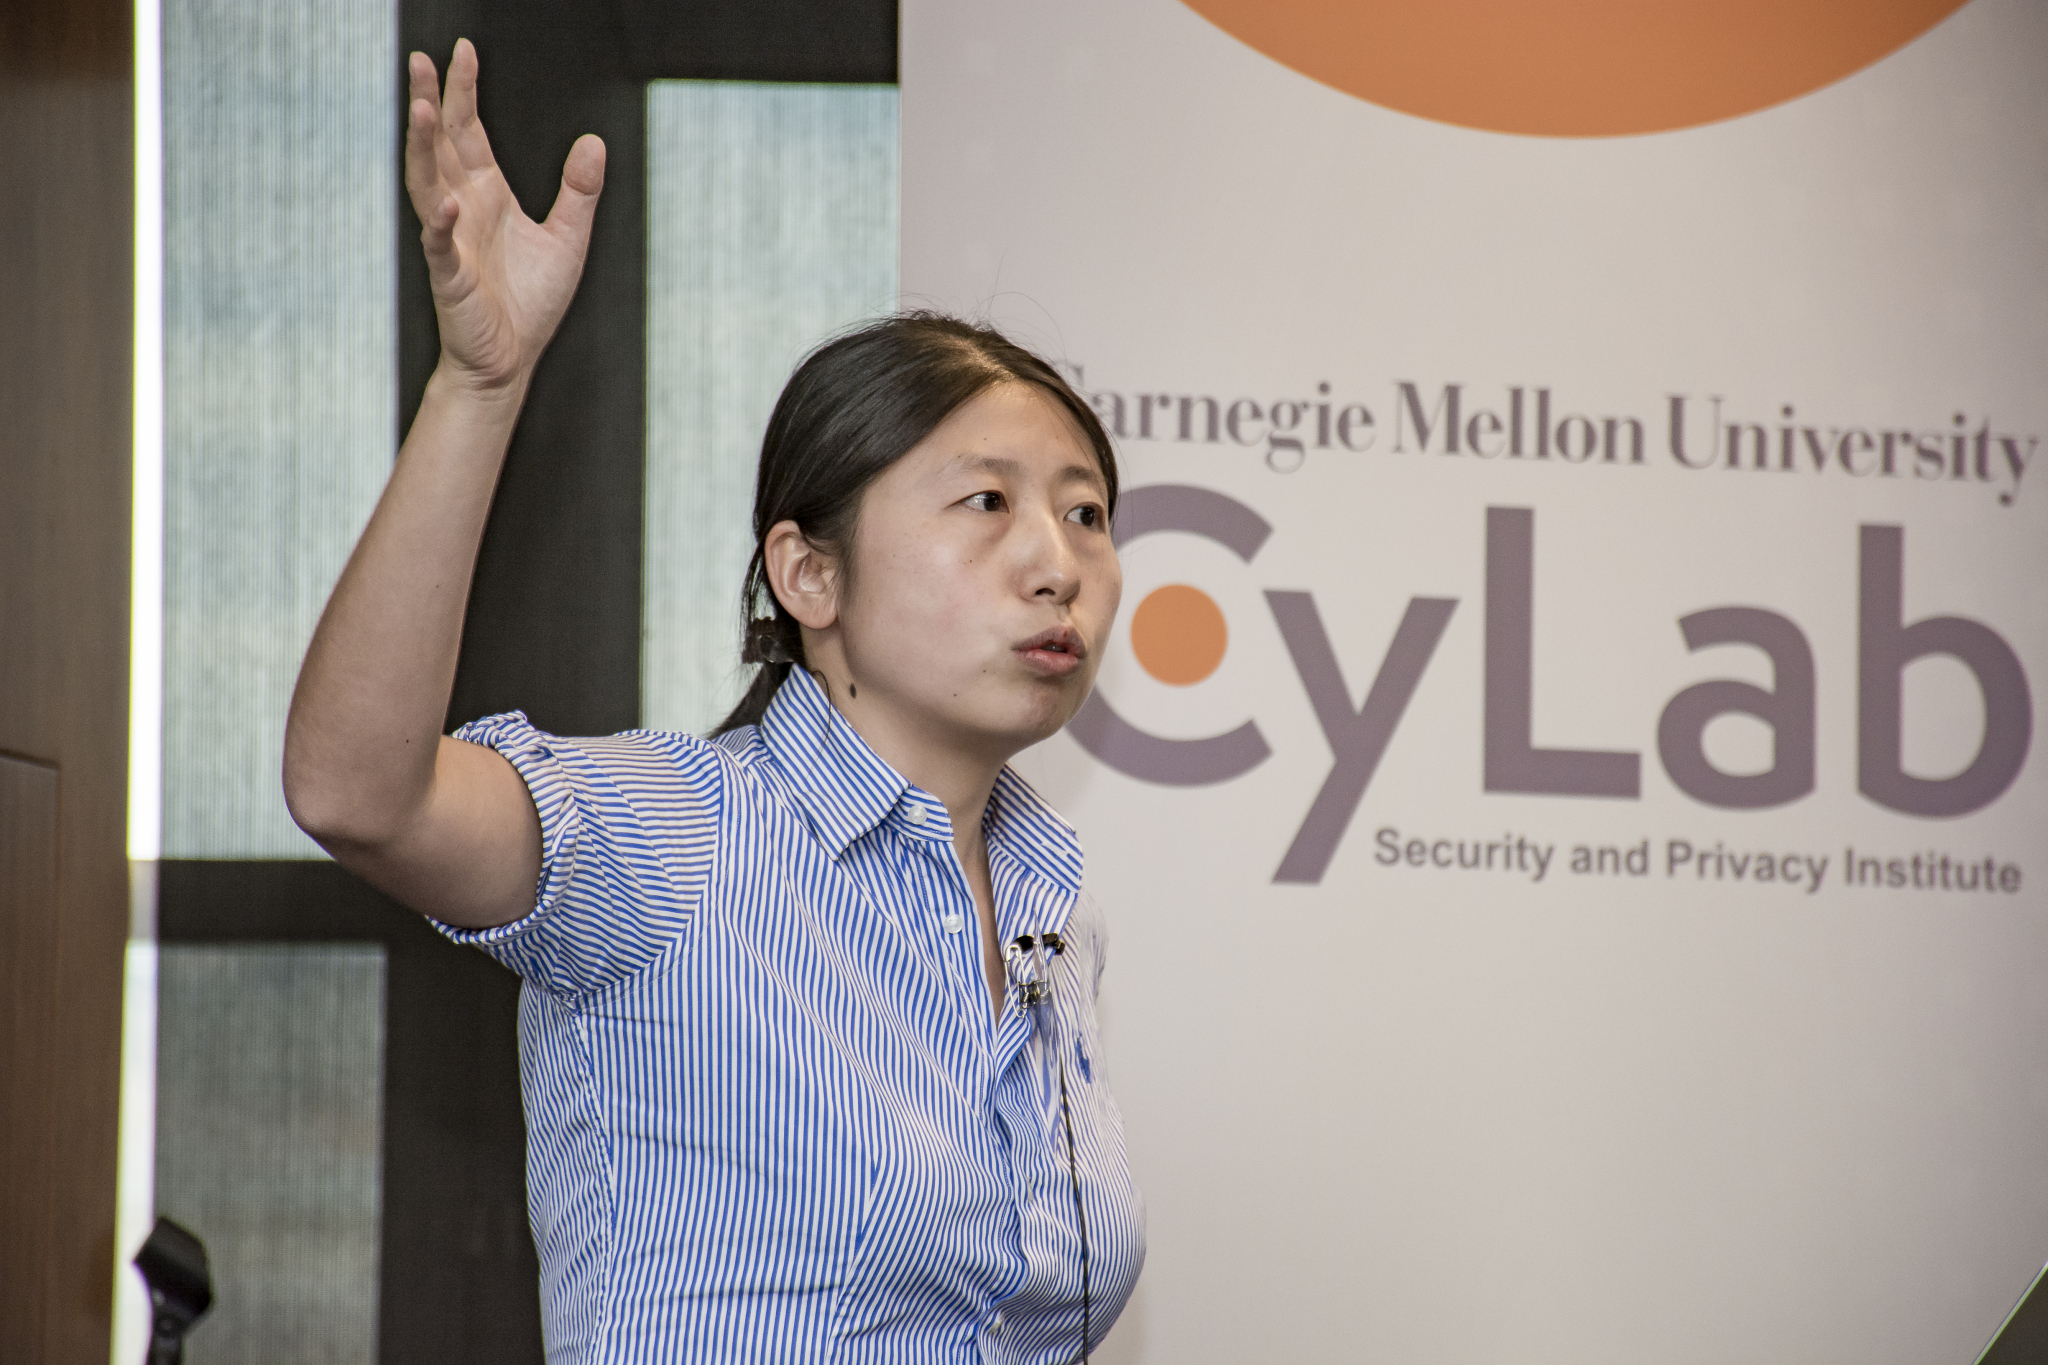 CyLab's Limin Jia presents her research at the 2016 CyLab Partners Conference